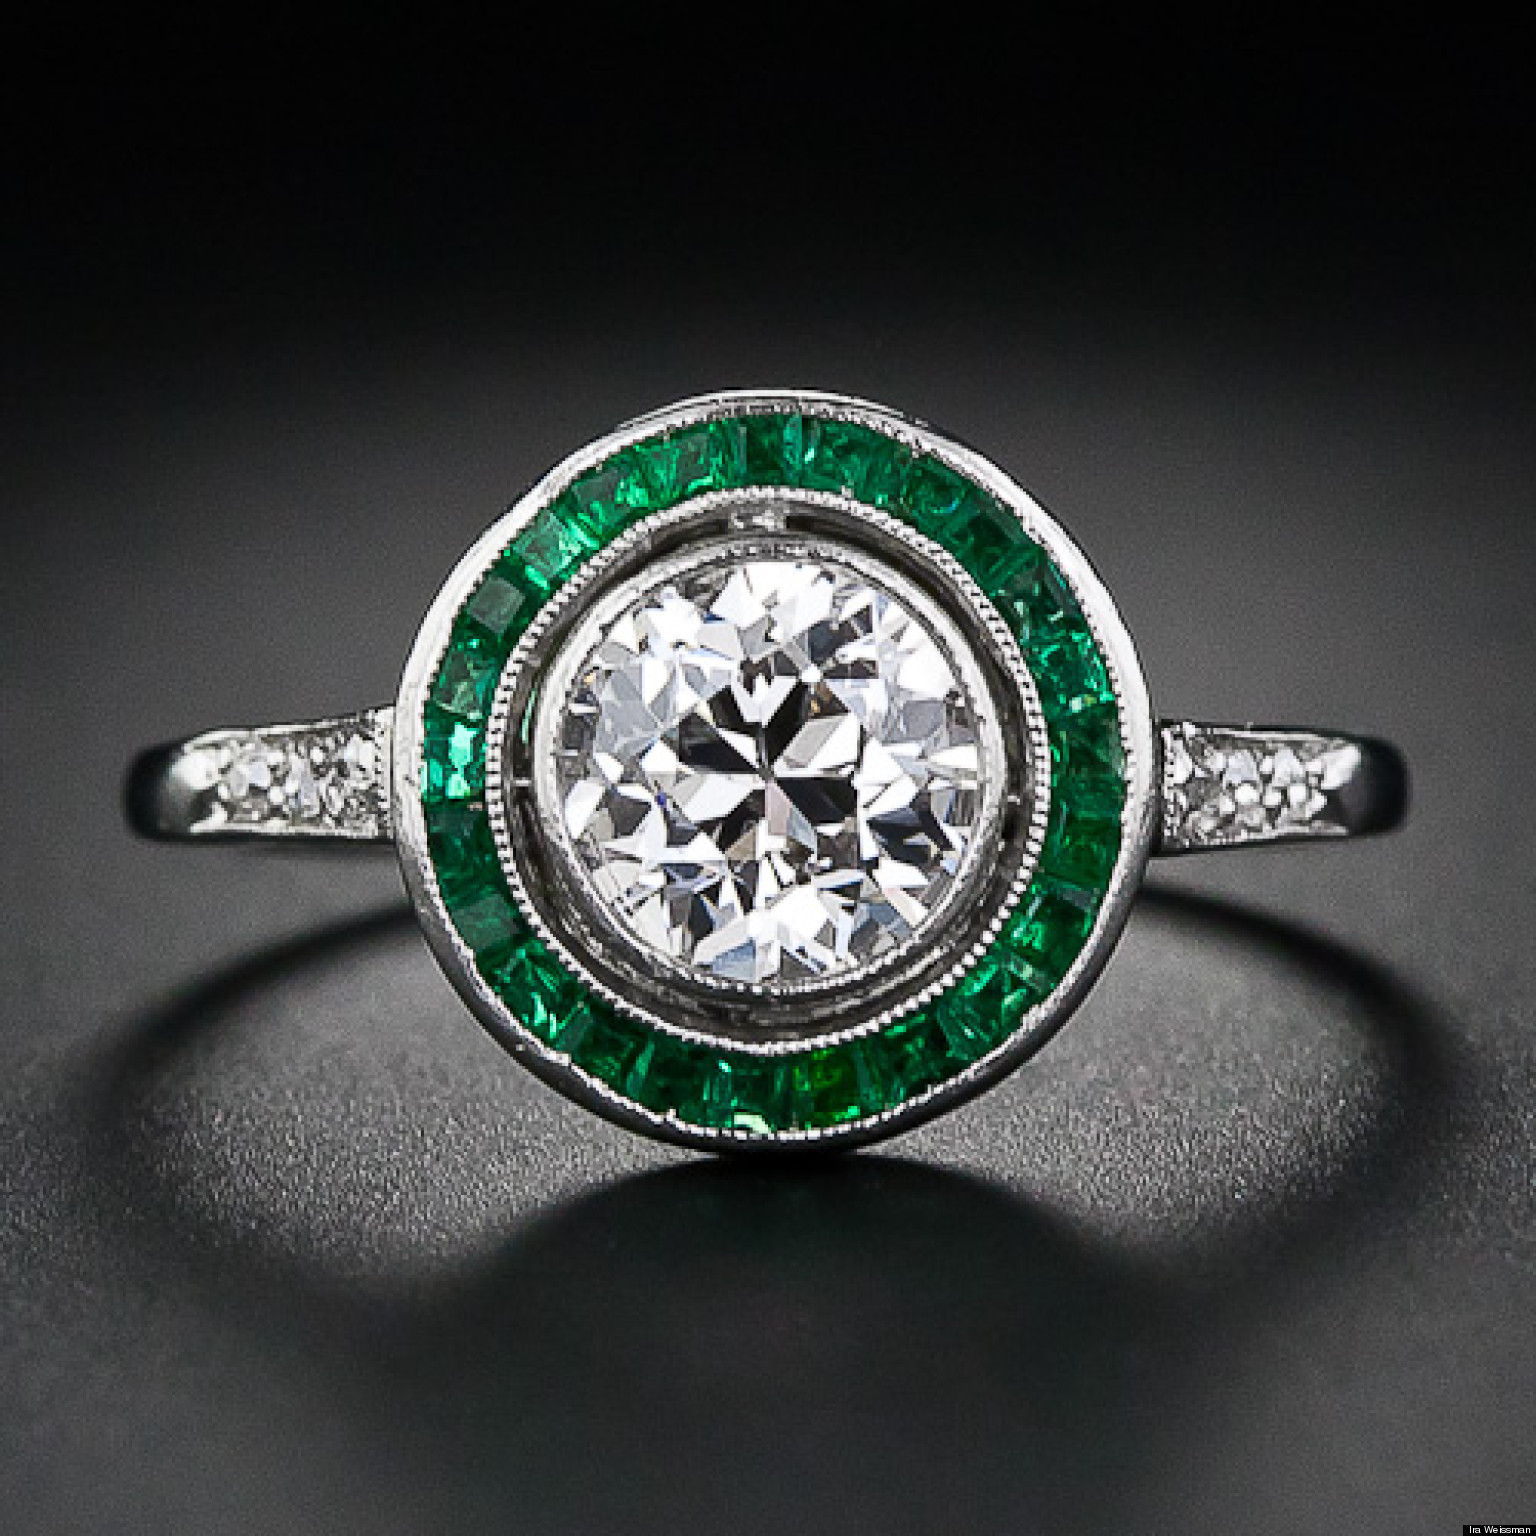 Emeralds The Hottest Engagement Ring Trend for 2013